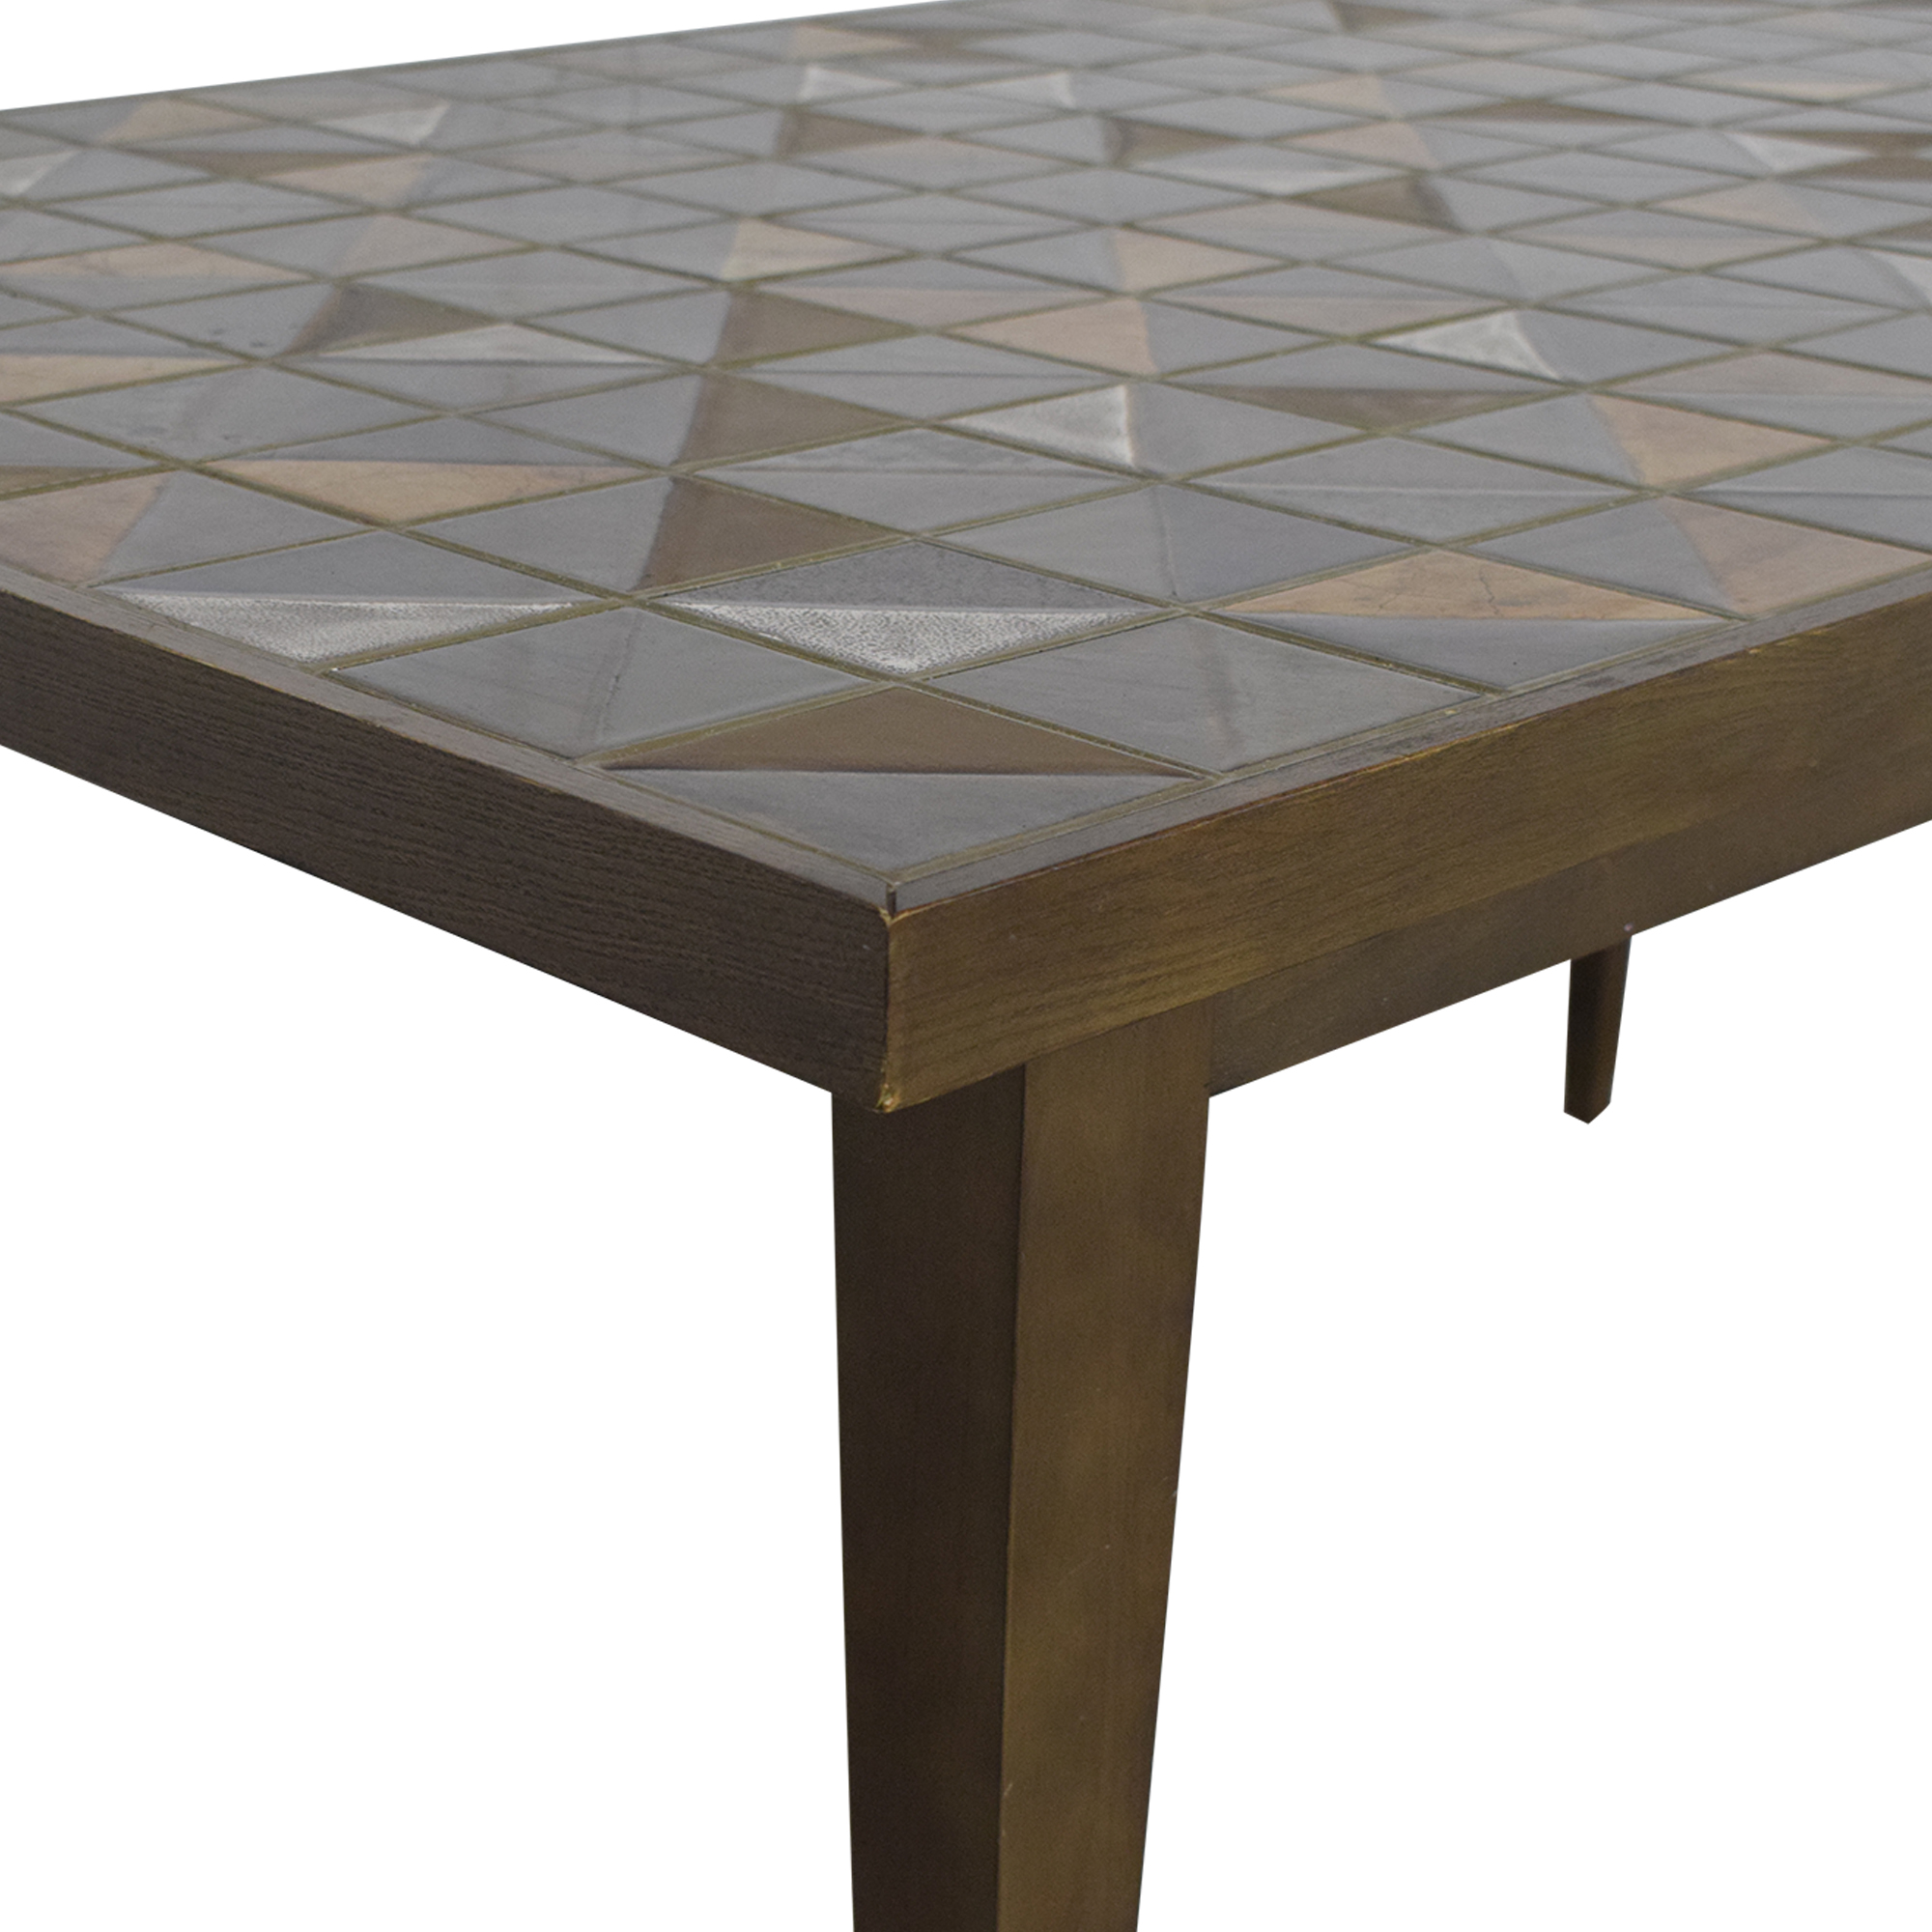 West Elm West Elm Lubna Chowdhary Tiled Dining Table pa